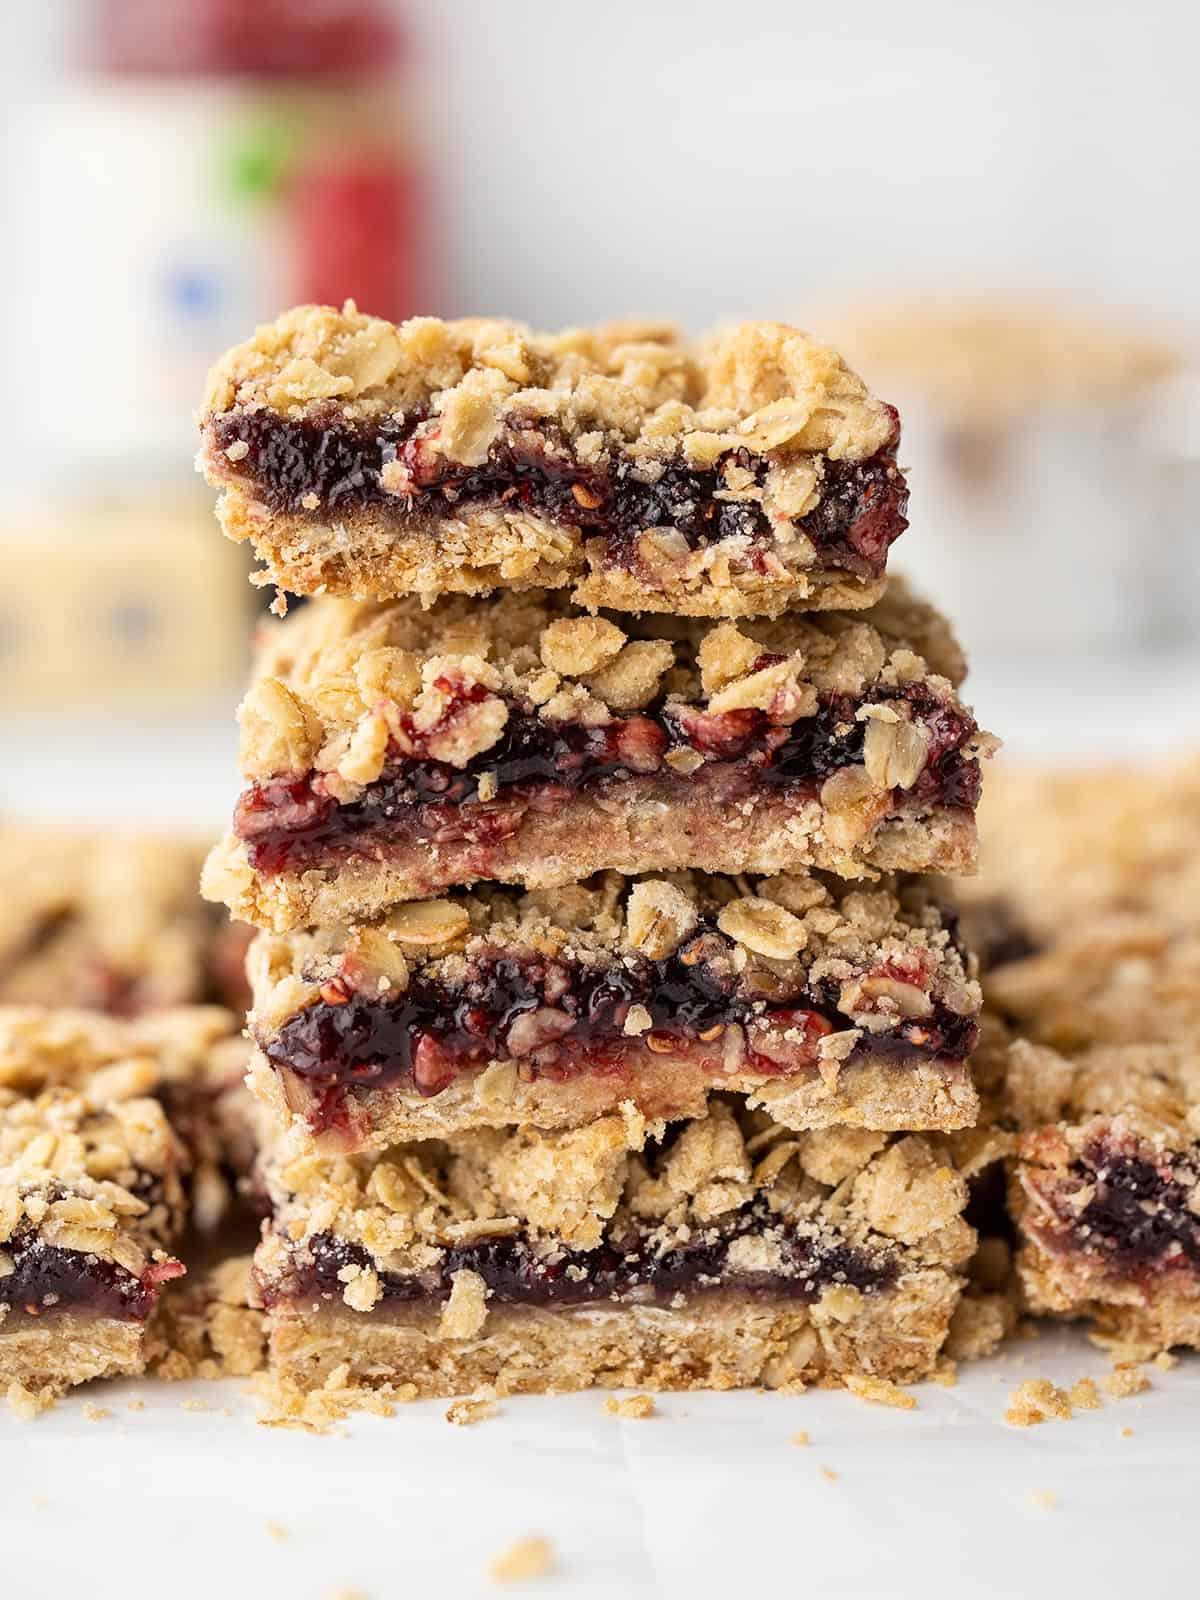 A stack of raspberry oatmeal bars viewed from the side